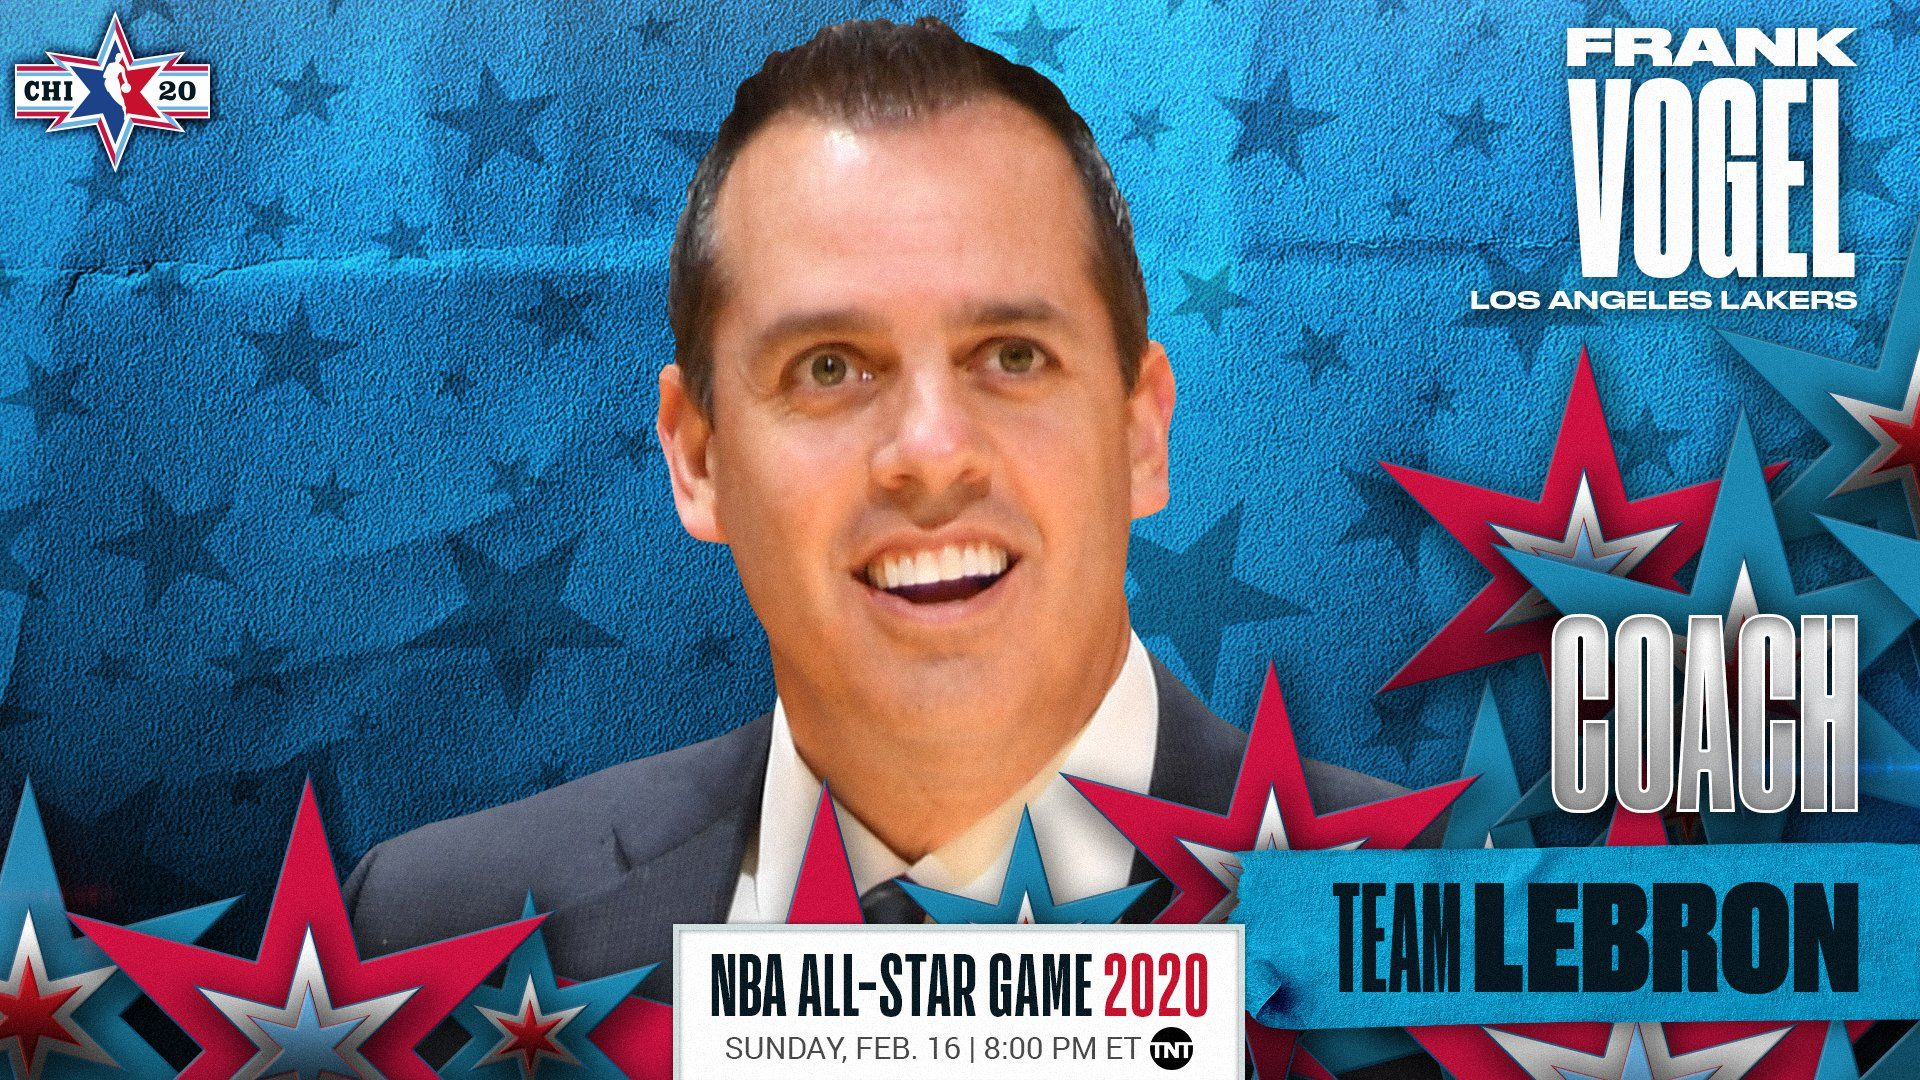 Los Angeles Lakers Head Coach Frank Vogel And His Staff Will Coach Teamlebron In The 2020 Nbaallstar Game C Nbaall In 2020 Coach Team Sports News Los Angeles Lakers